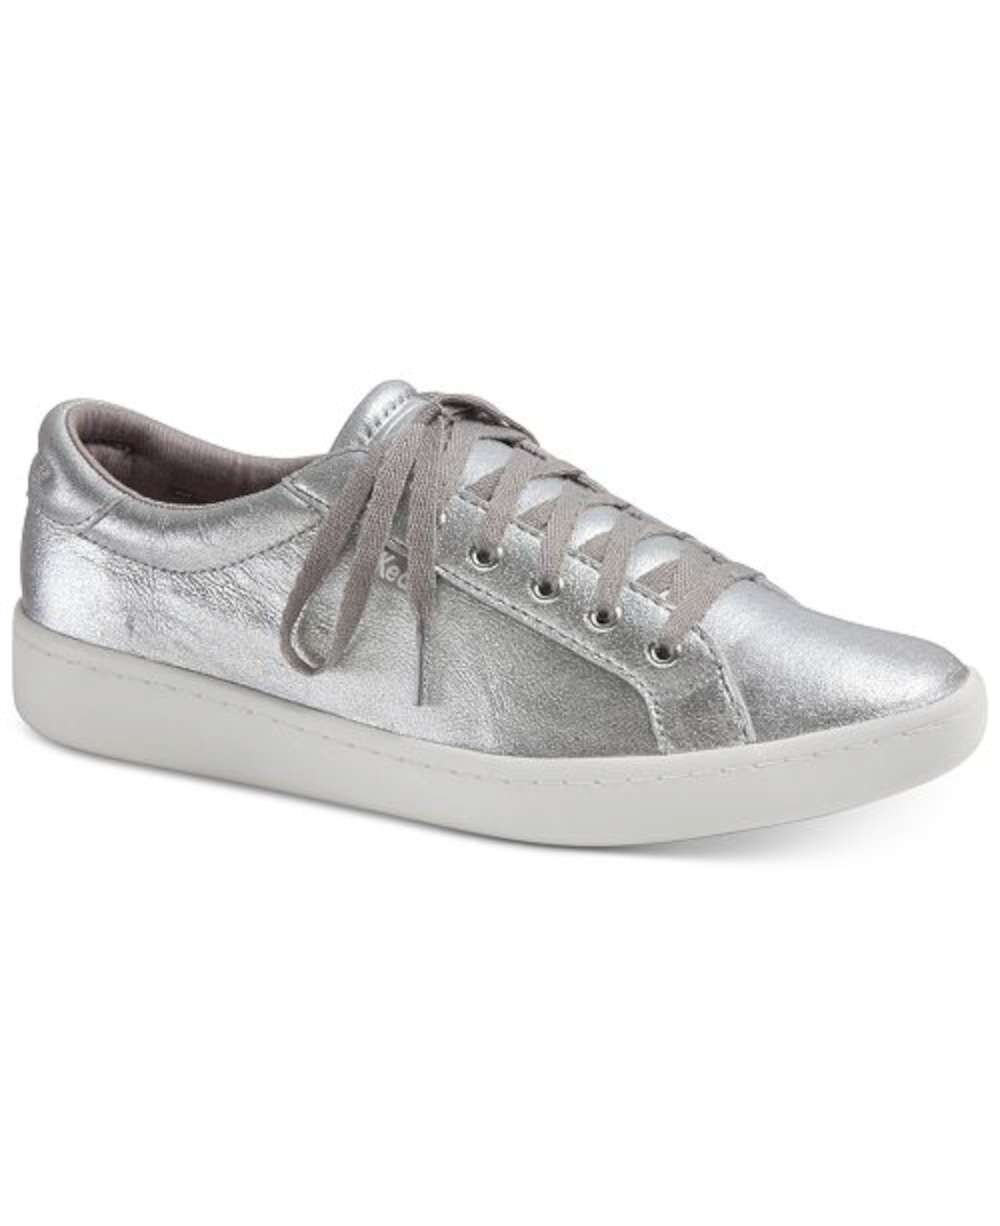 62a67572bf Keds Womens Ace Low Top Lace Up Fashion Sneakers